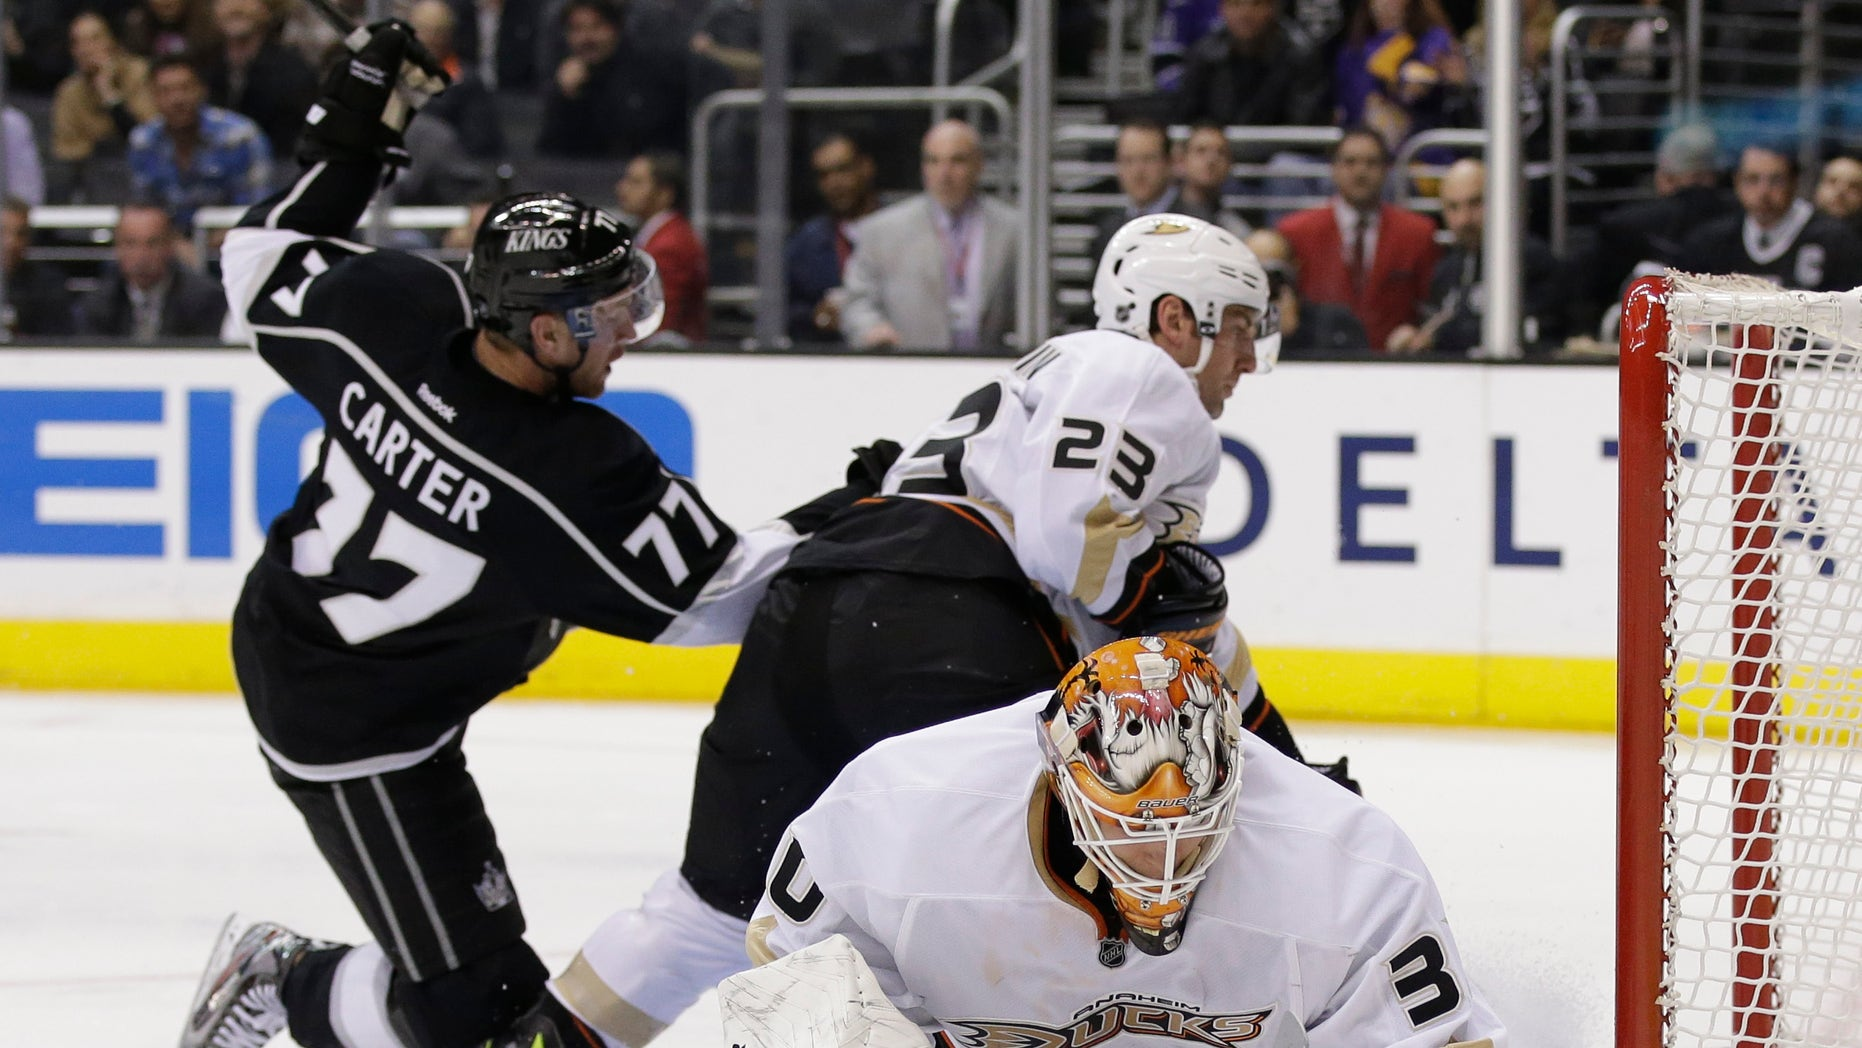 Anaheim Ducks goalie Viktor Fasth, right, blocks a shot by Los Angeles Kings center Jeff Carter(37) with the help of Francois Beauchemin(22) during the second period of an NHL hockey game in Los Angeles, Monday, Feb. 25, 2013. (AP Photo/Chris Carlson)